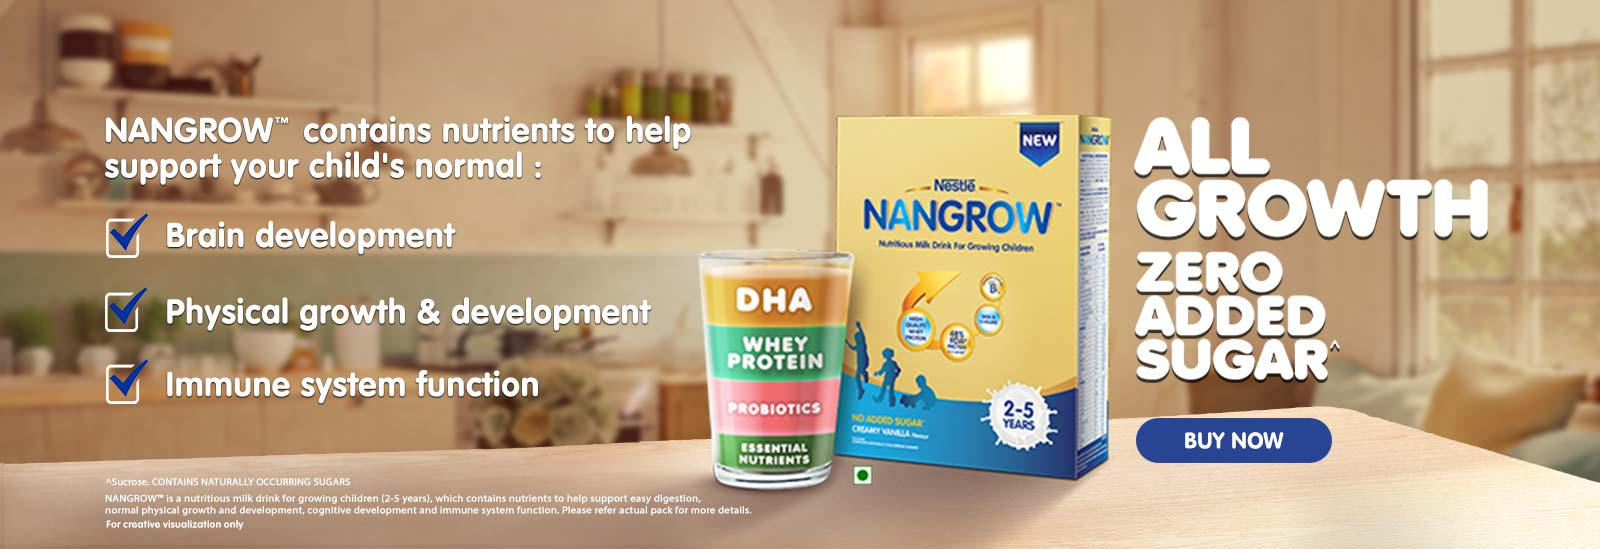 Nangrow Contains nutrients to help support your childs normal